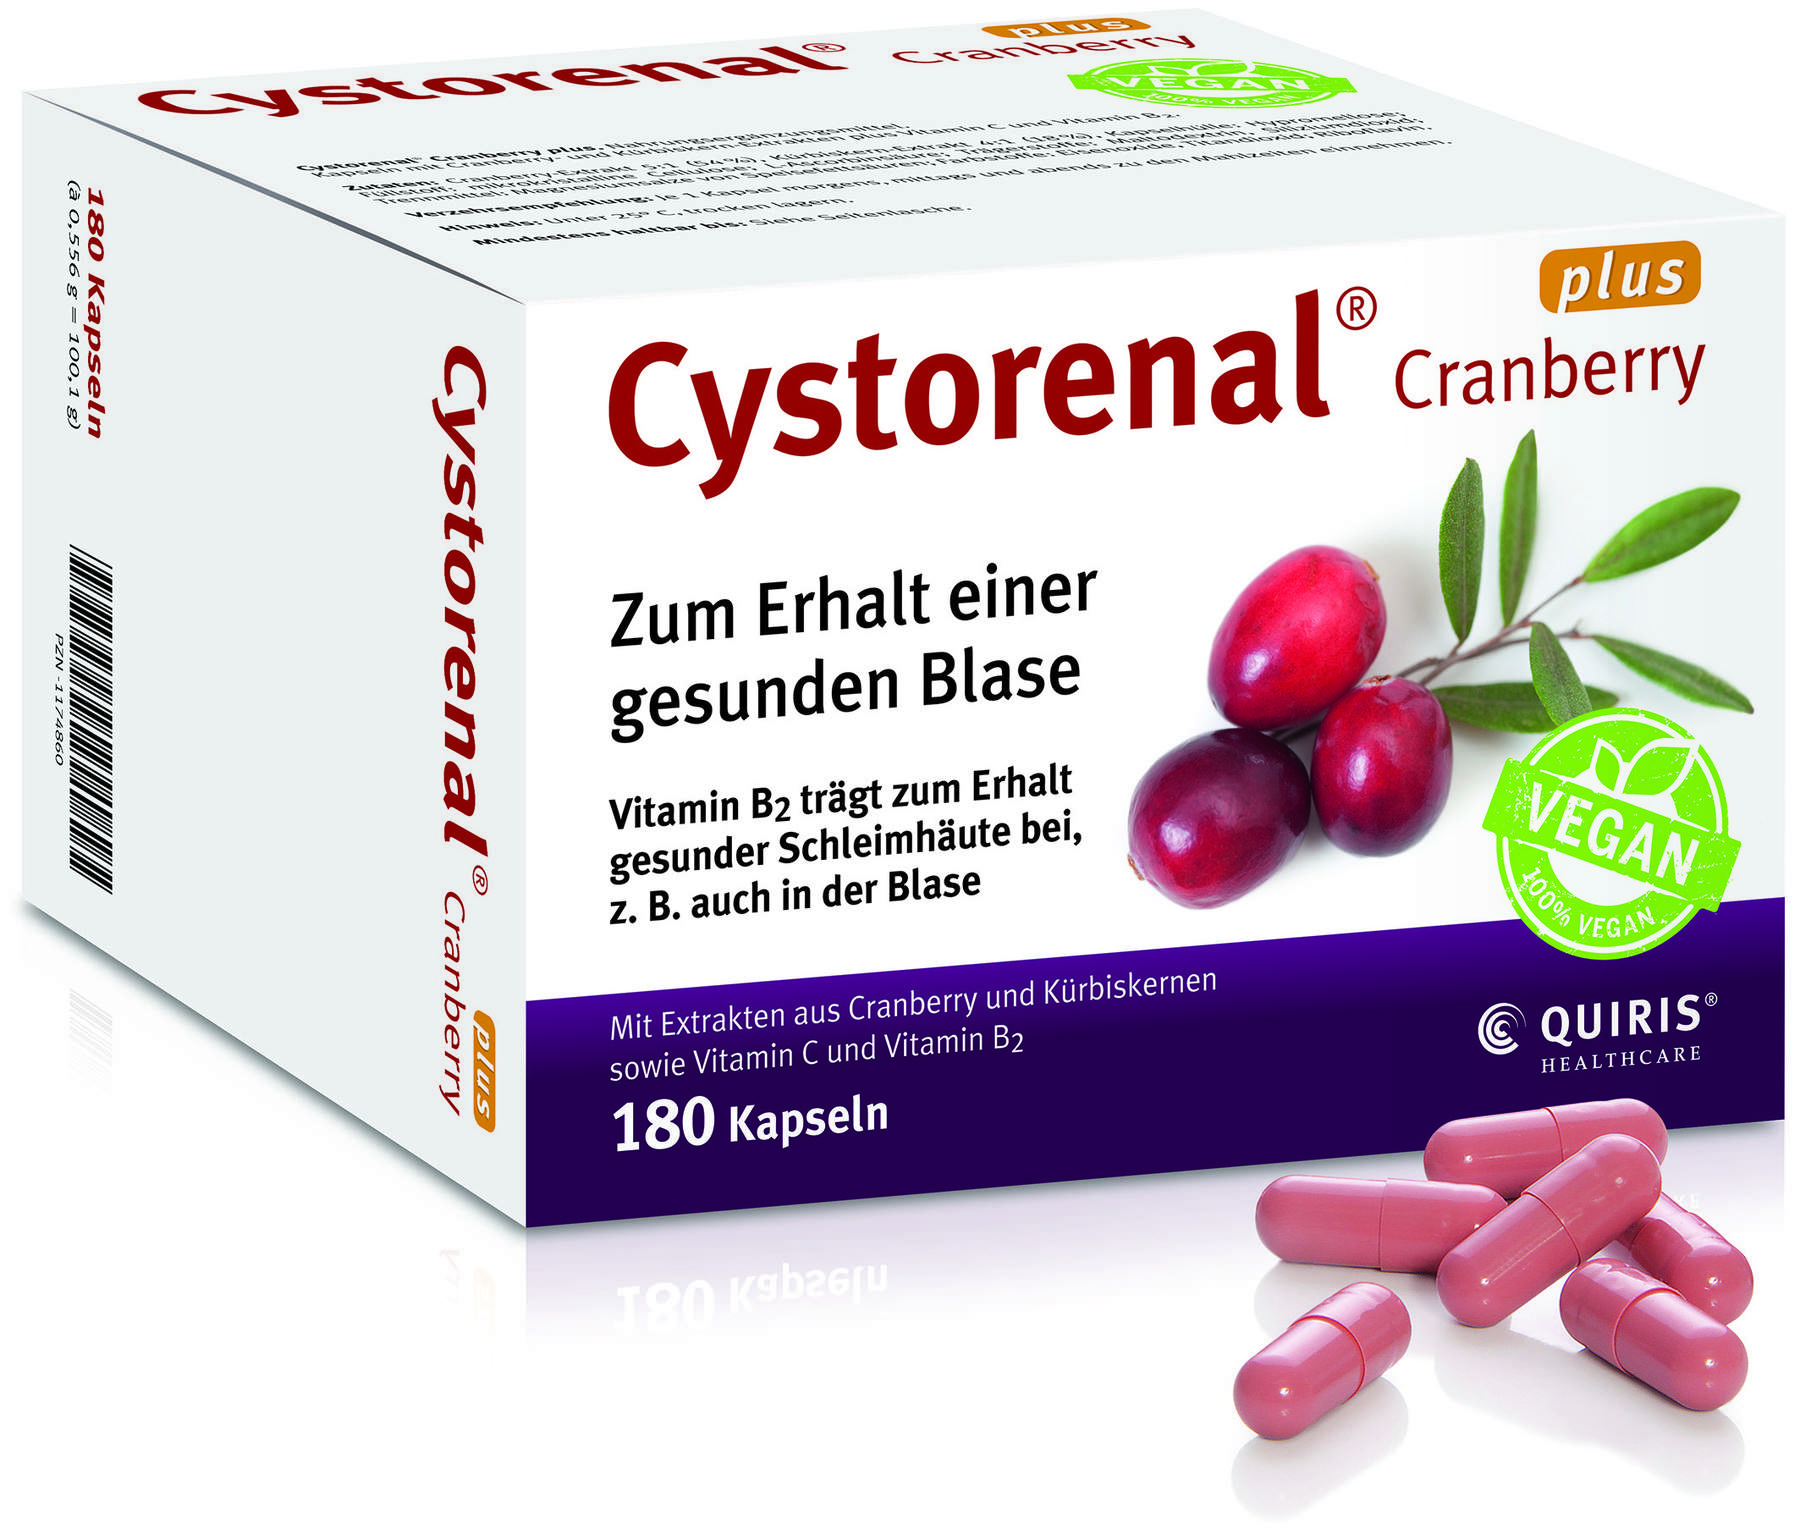 cystorenal plus cranberry 180 kapseln kaufen. Black Bedroom Furniture Sets. Home Design Ideas